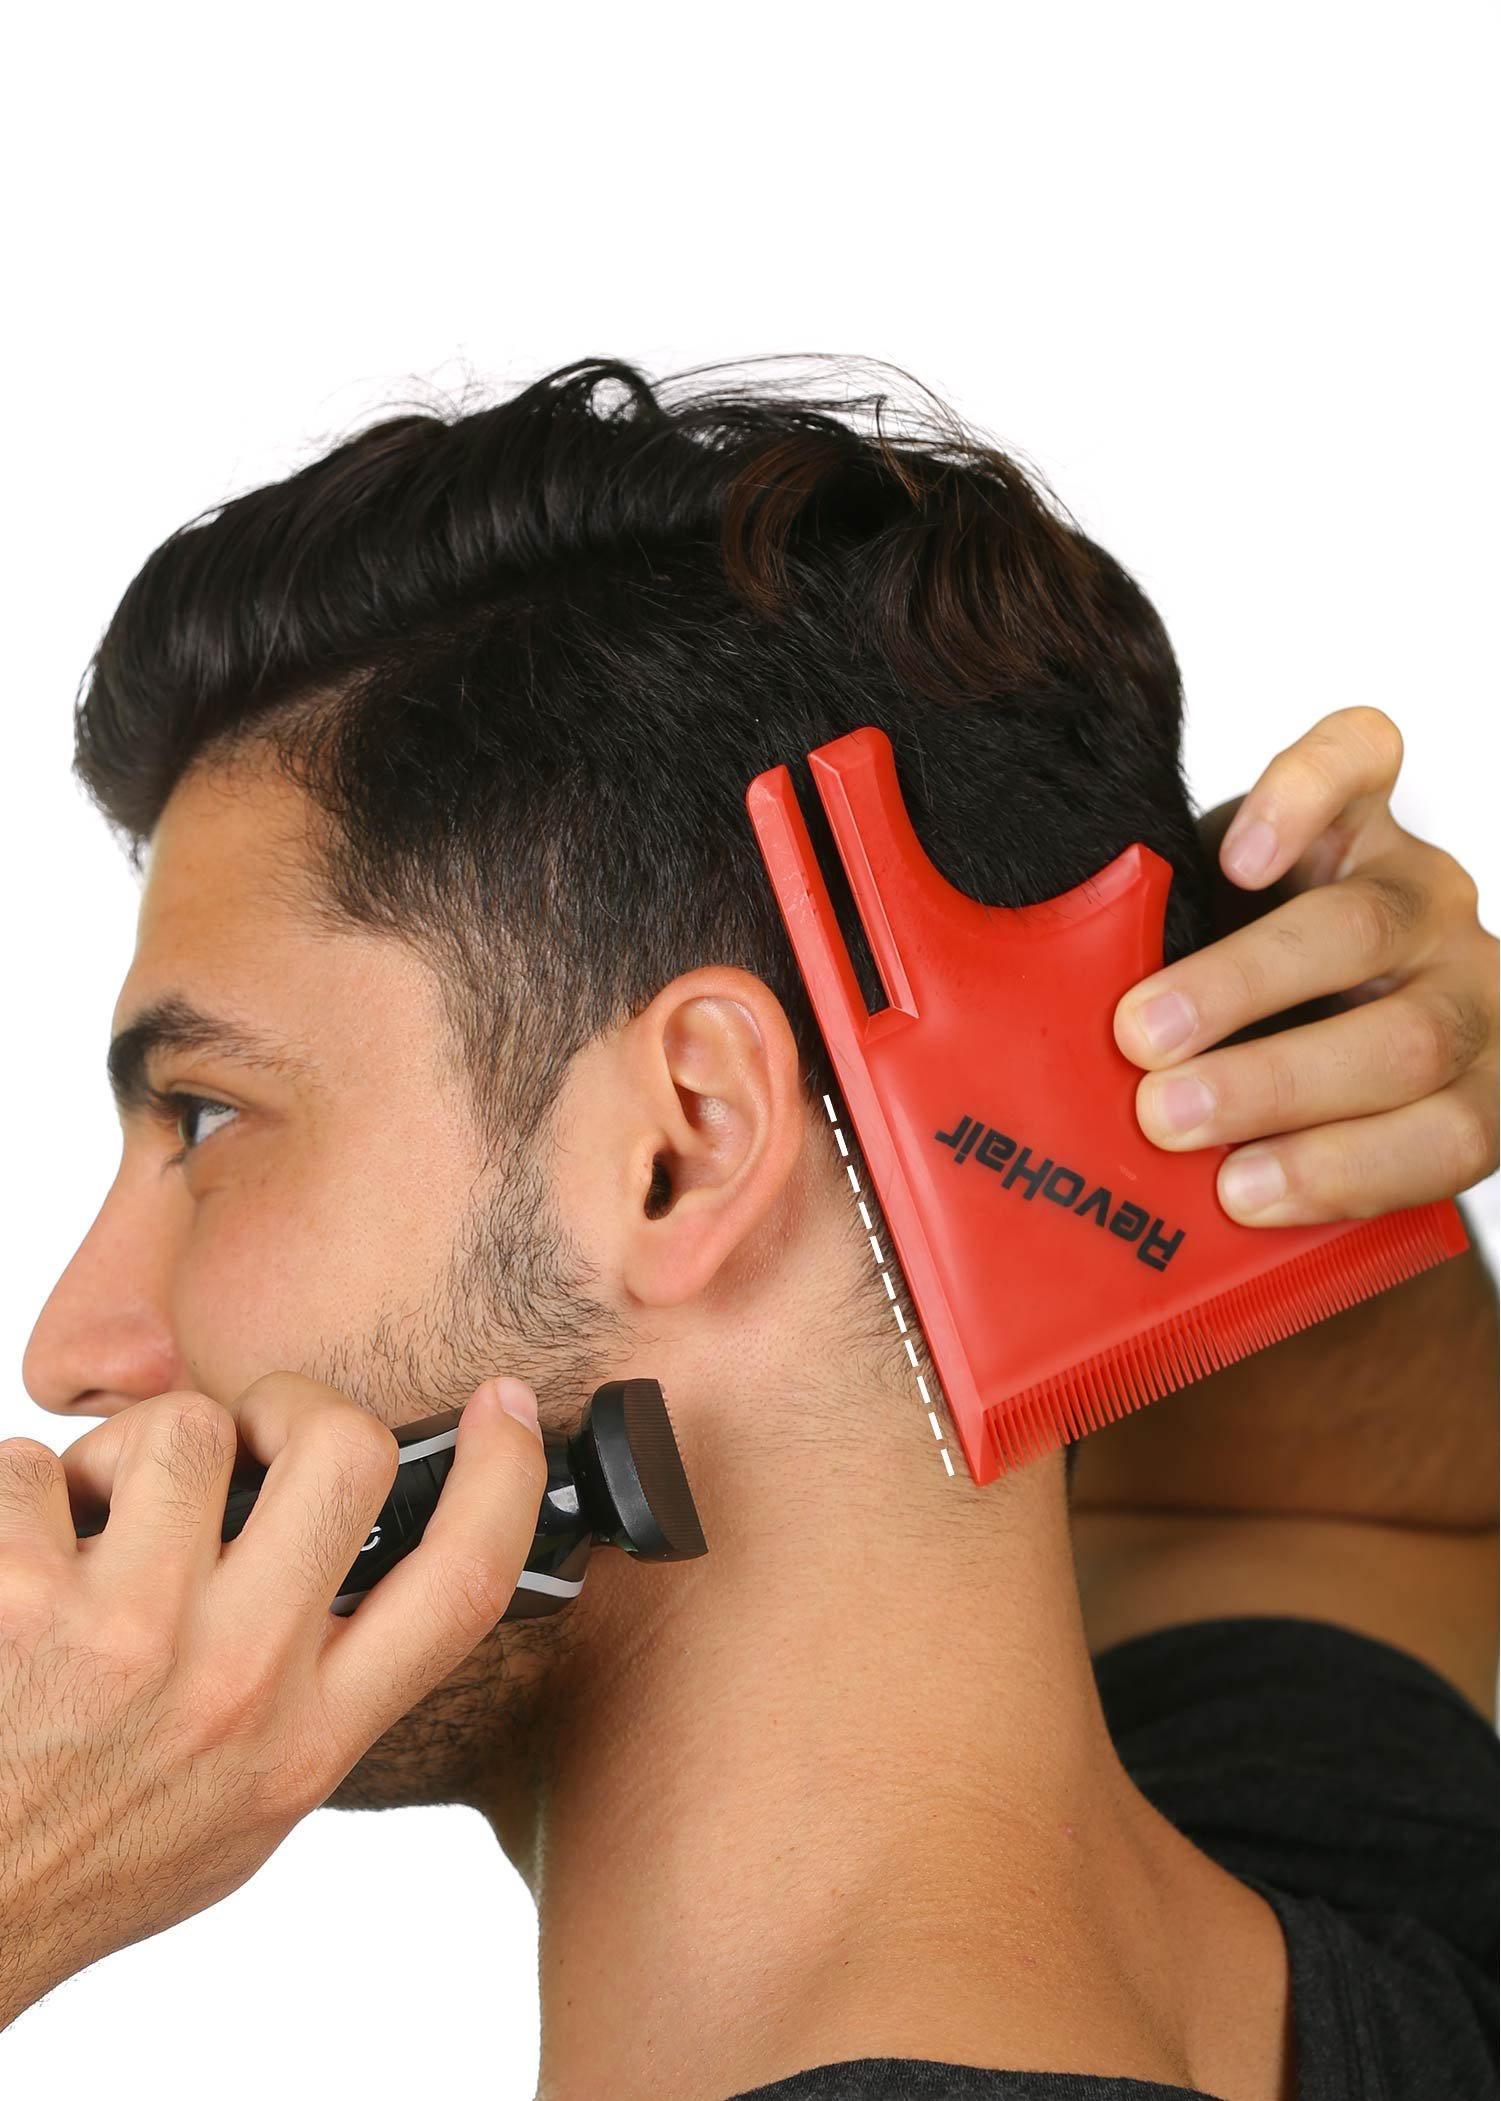 Revohair haircut tool multi curve hairline templatestencilguide revohair haircut tool multi curve hairline templatestencilguide for men barber supplies lightweight with hair beard comb lineup edge up do solutioingenieria Gallery